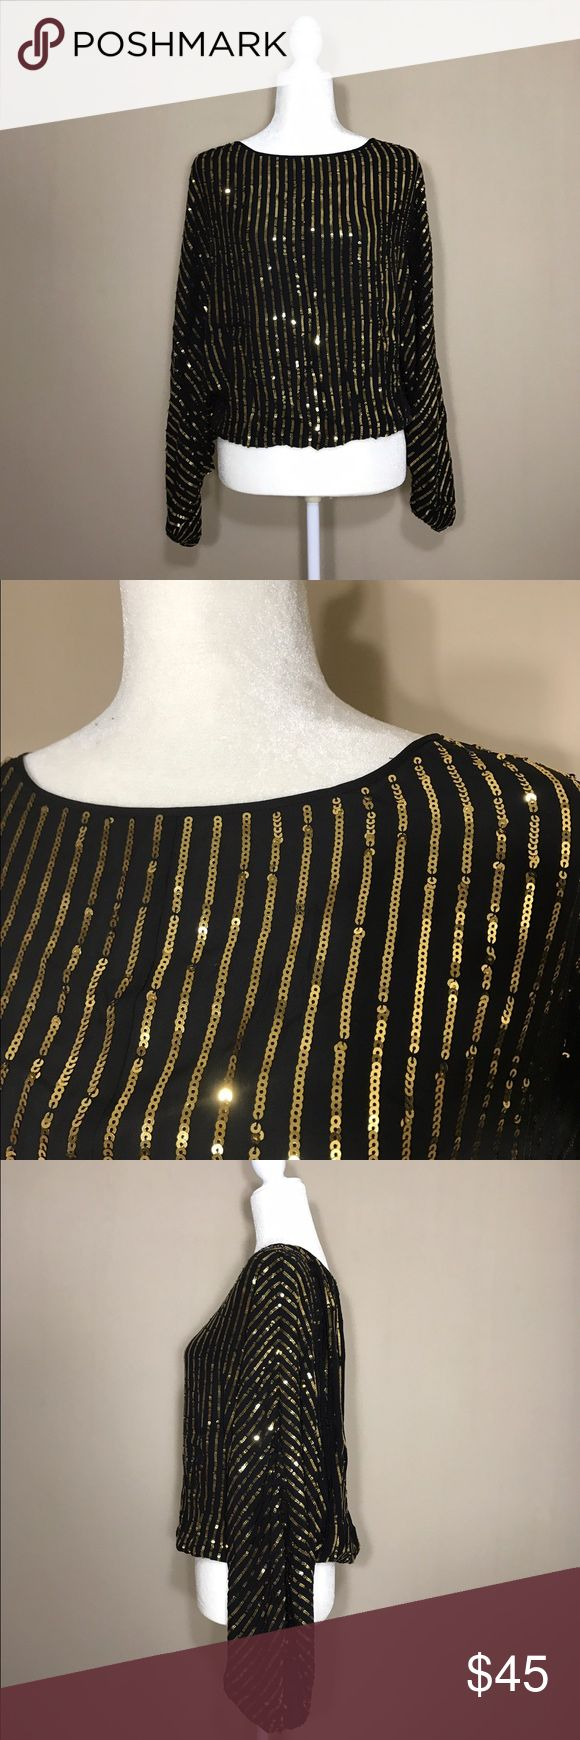 Rachel Zoe Sequin Black and Gold Slouchy Top Gorgeous sequin top by Rachel Zoe.  In mint condition, size M.  100% silk. No trades please. Thank you for stopping by  Rachel Zoe Tops Blouses